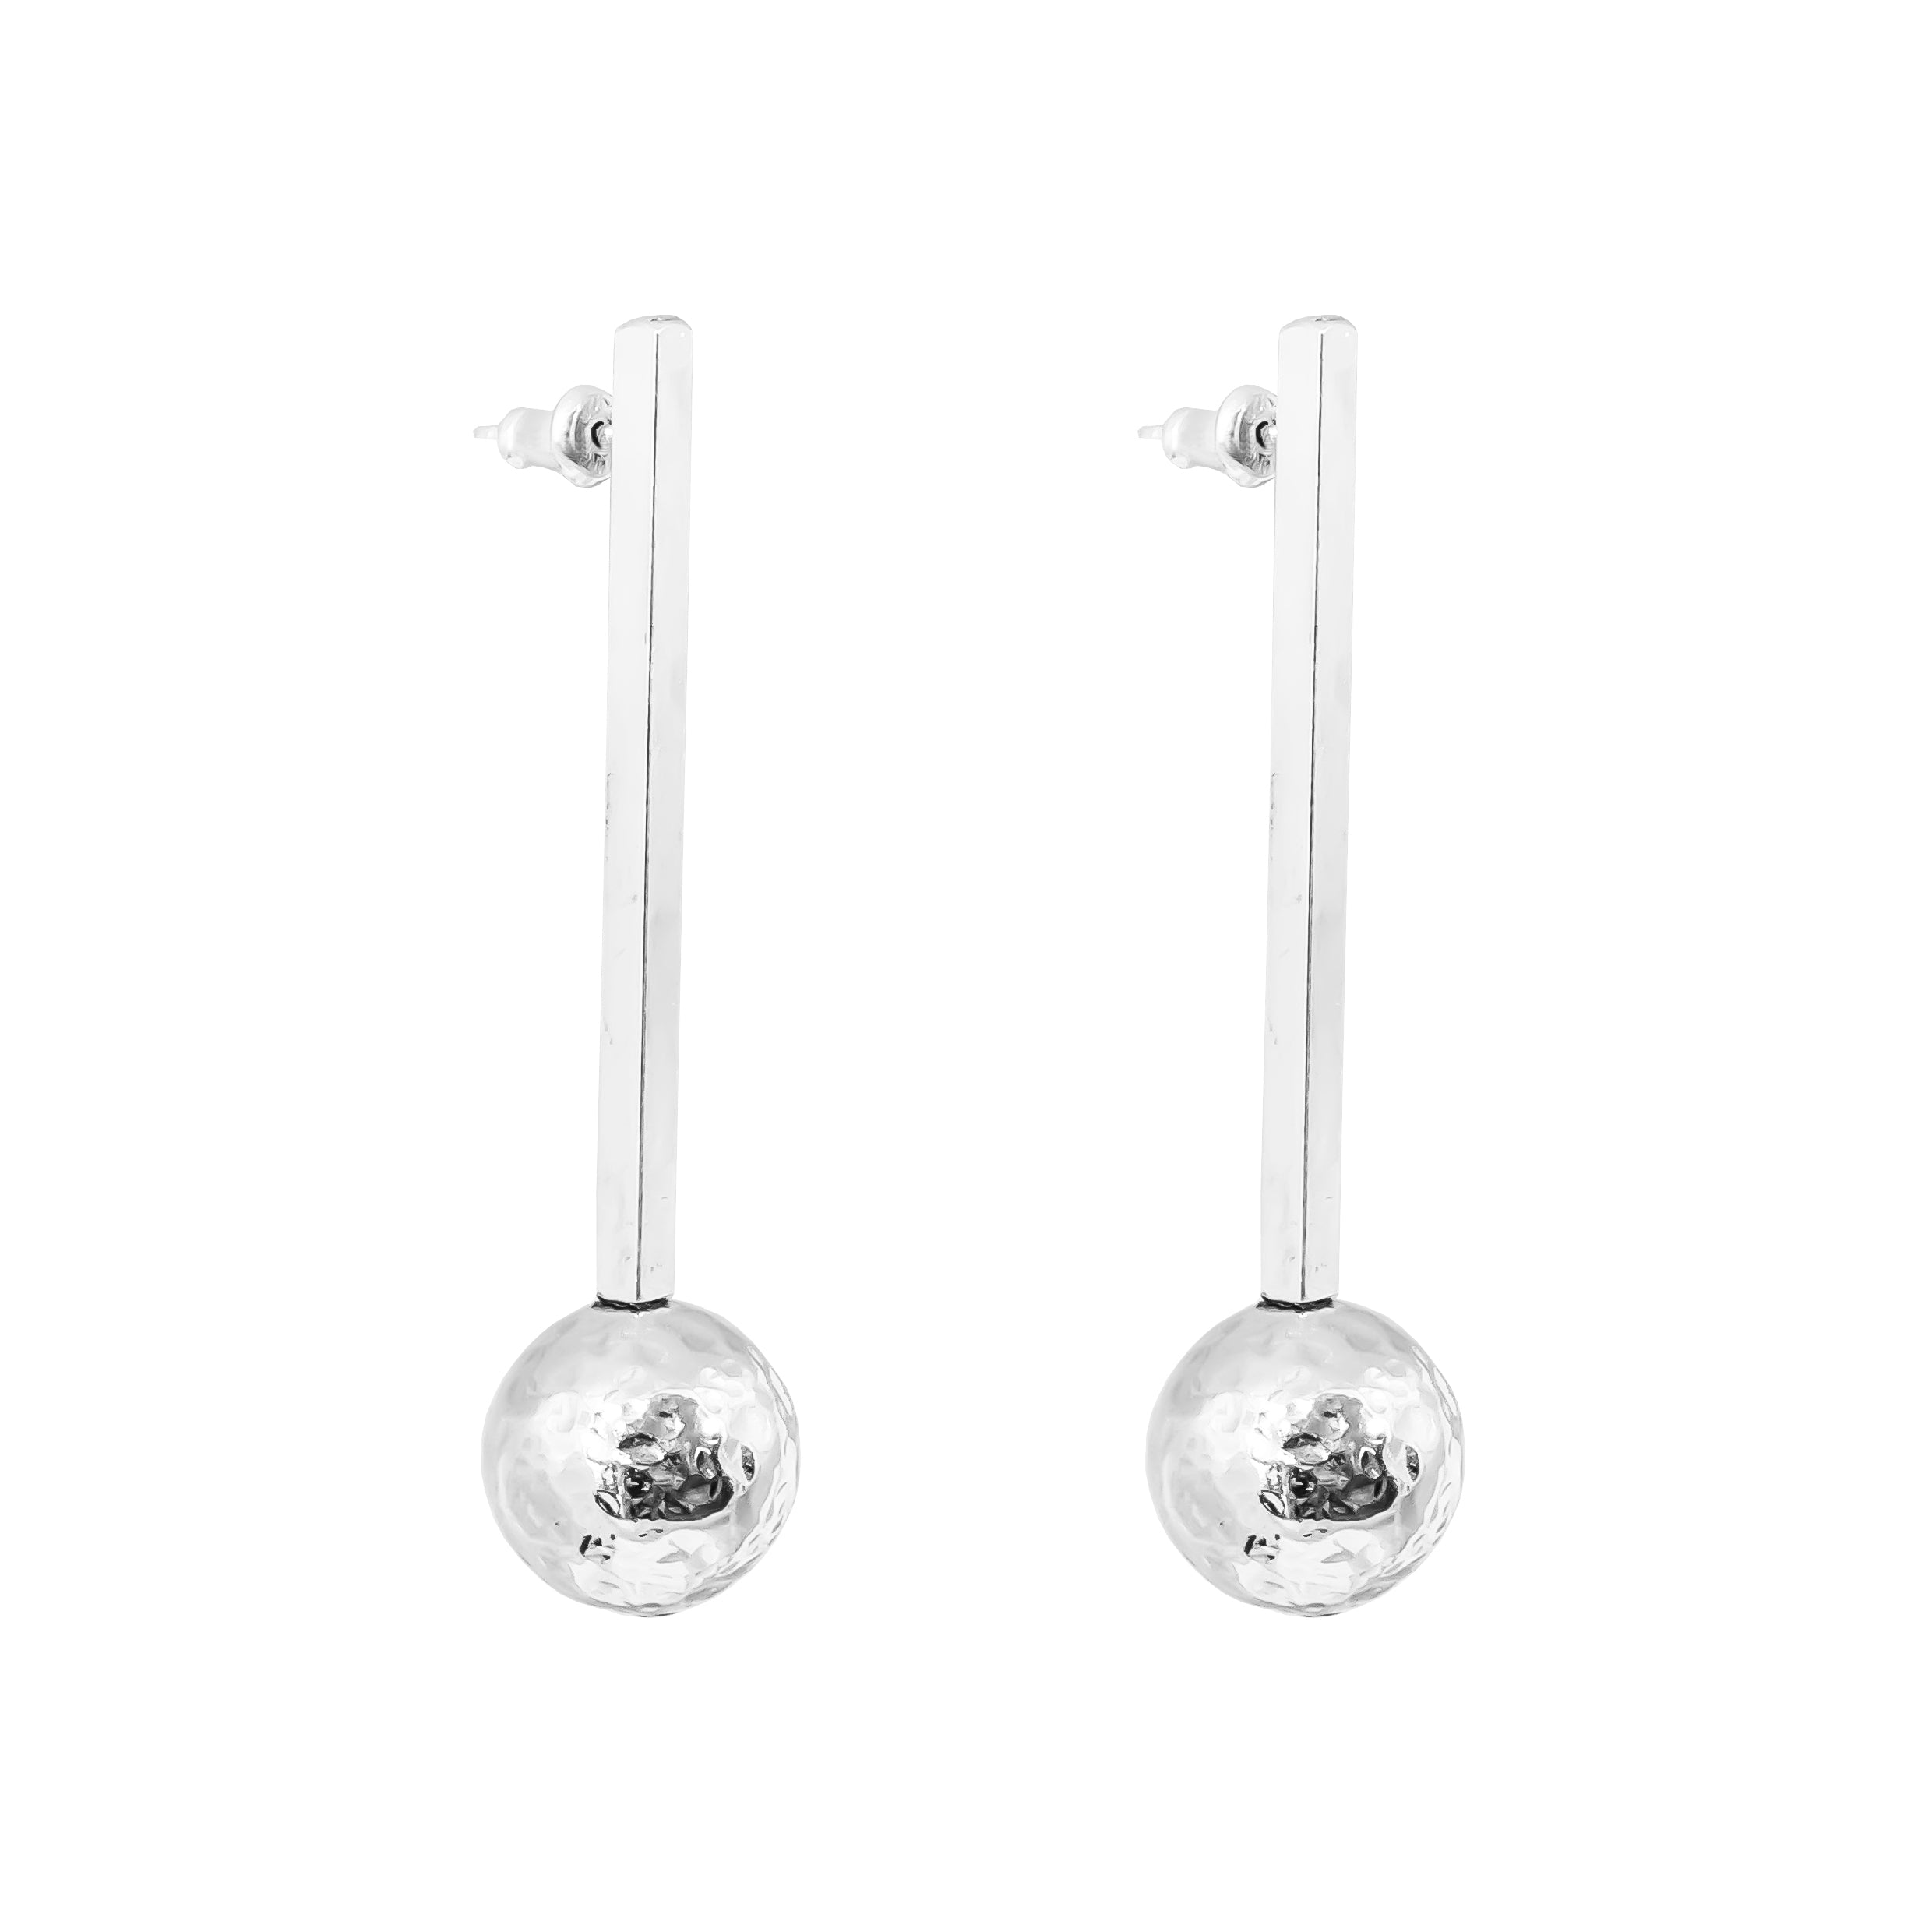 Kiera Earrings - Long | Polished Silver Bar With Hammered Silver Detail